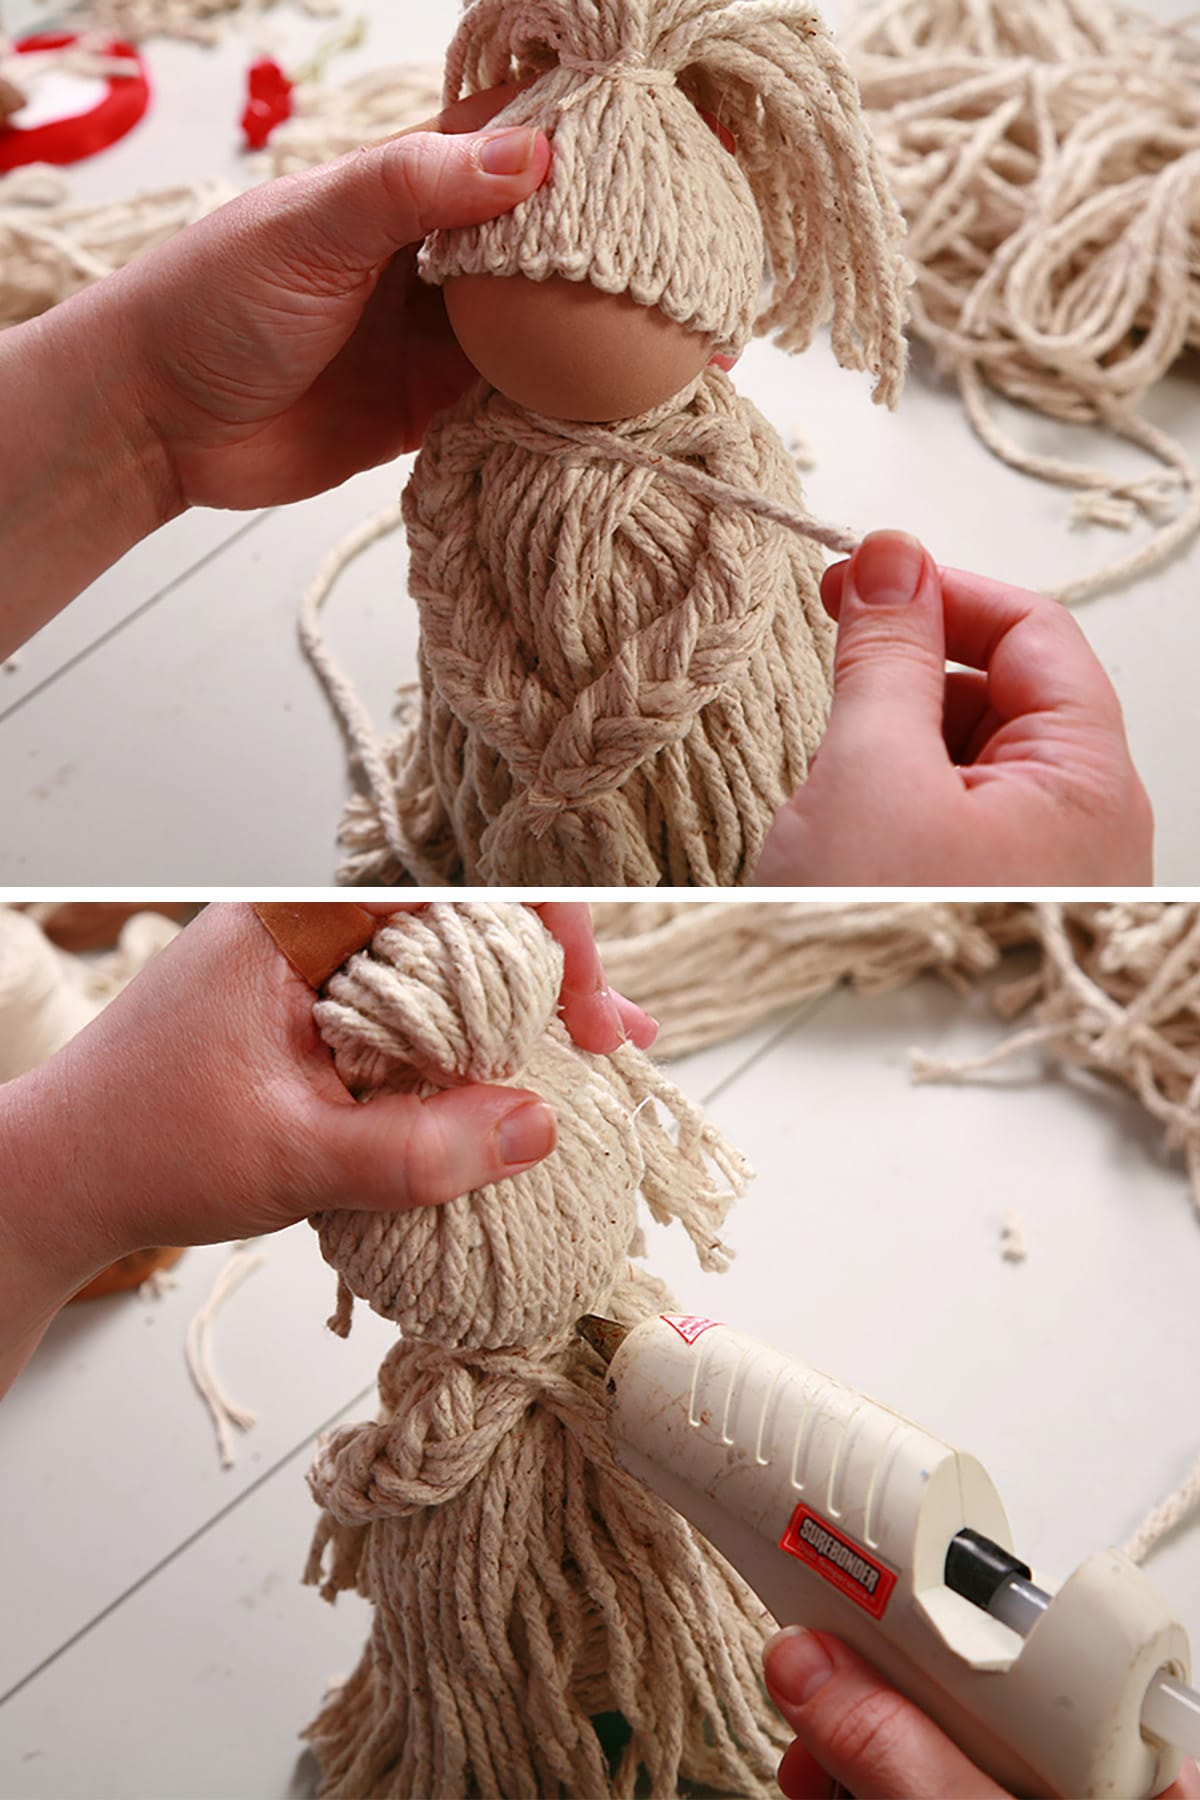 A length of string is glued to the base of the neck, wrapped around, and secured with glue.